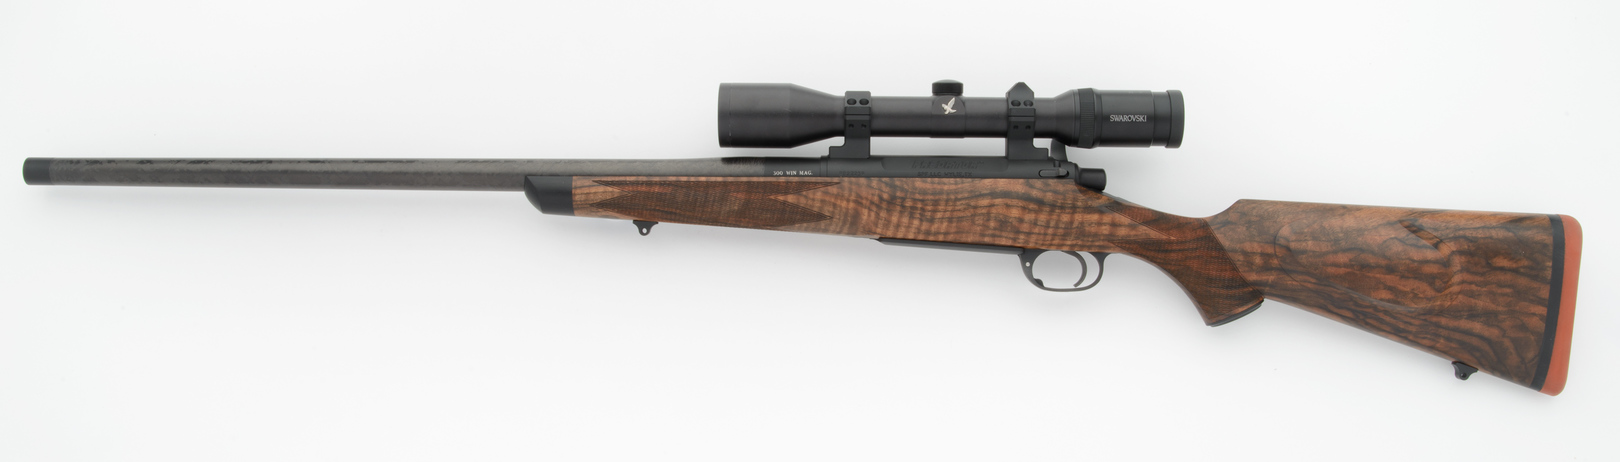 Avani Rifle Carbon Barrel